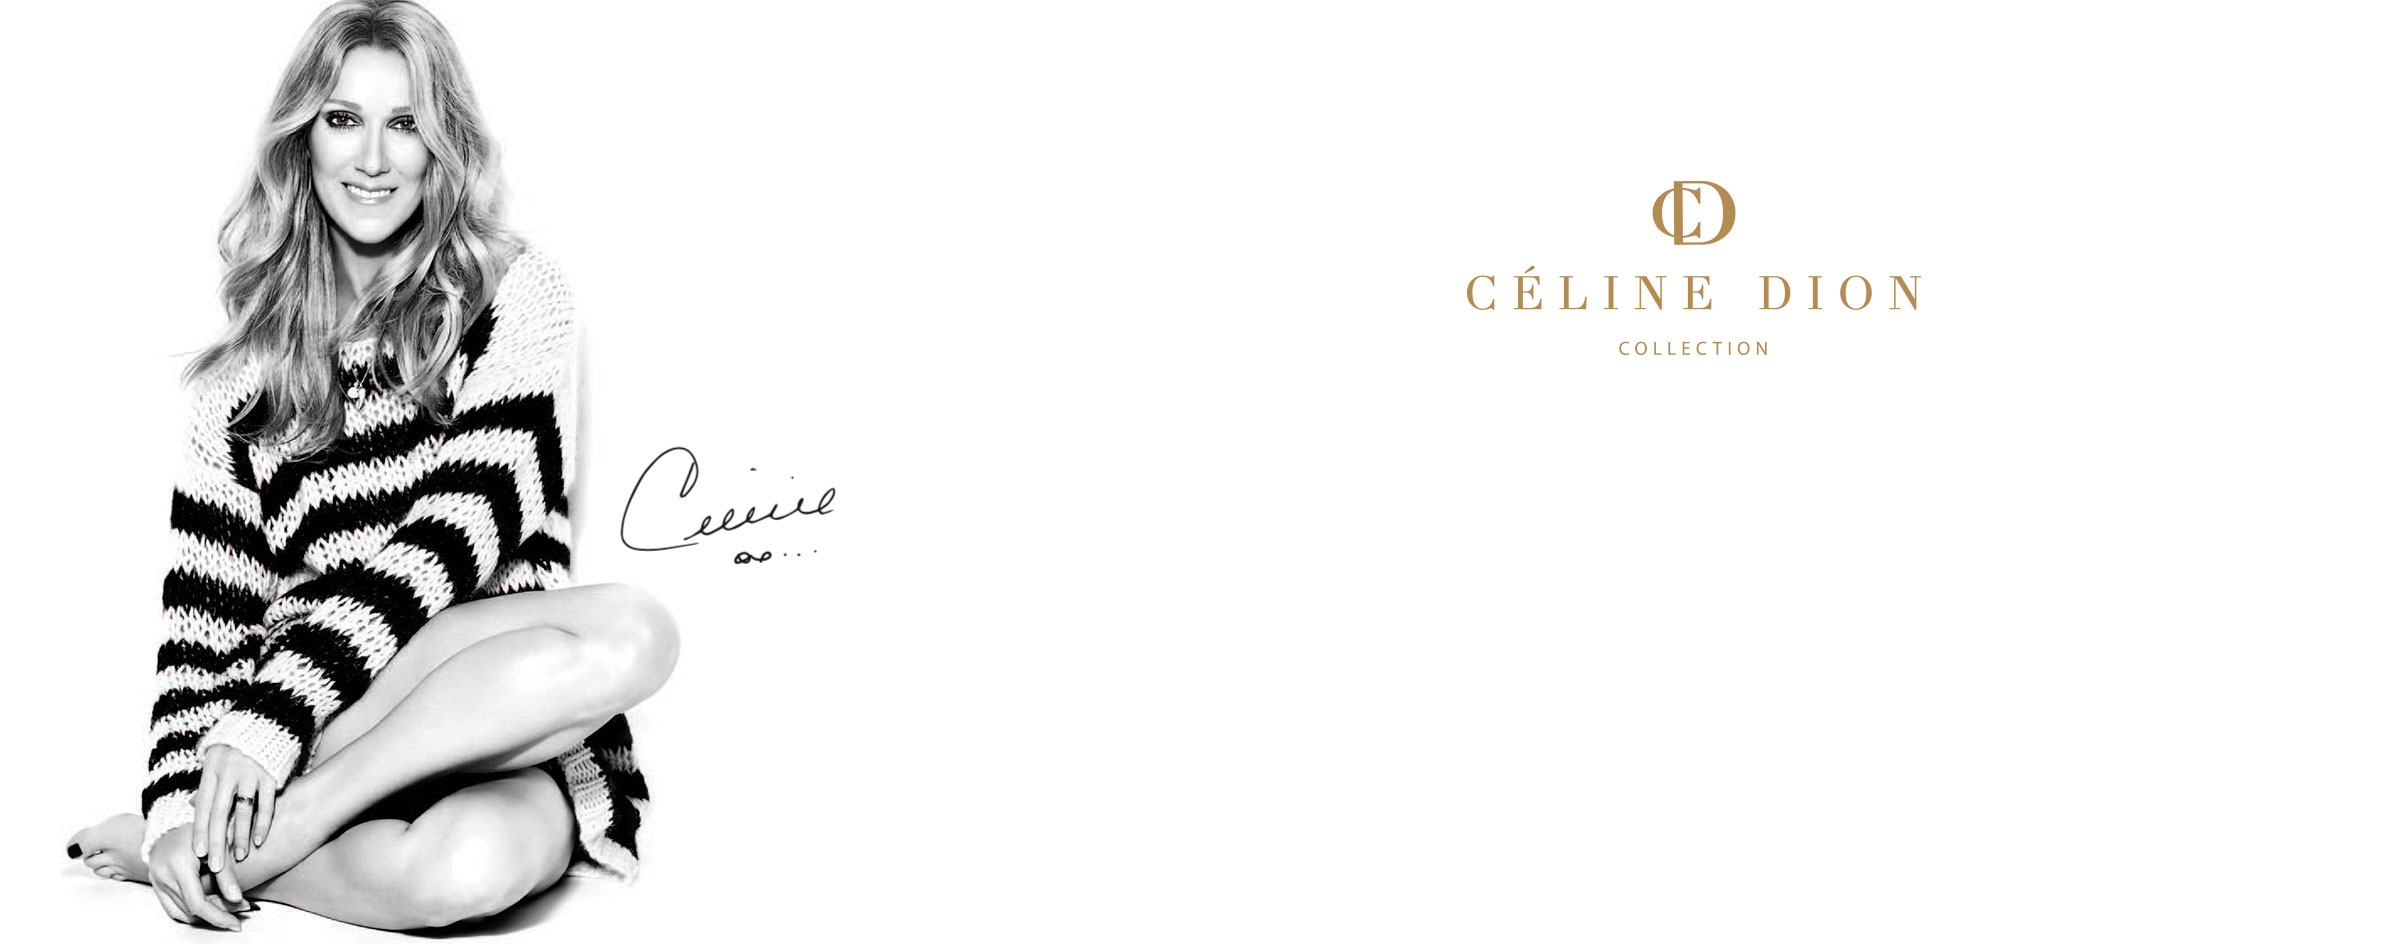 Melanie Lyne - Céline Dion Collection